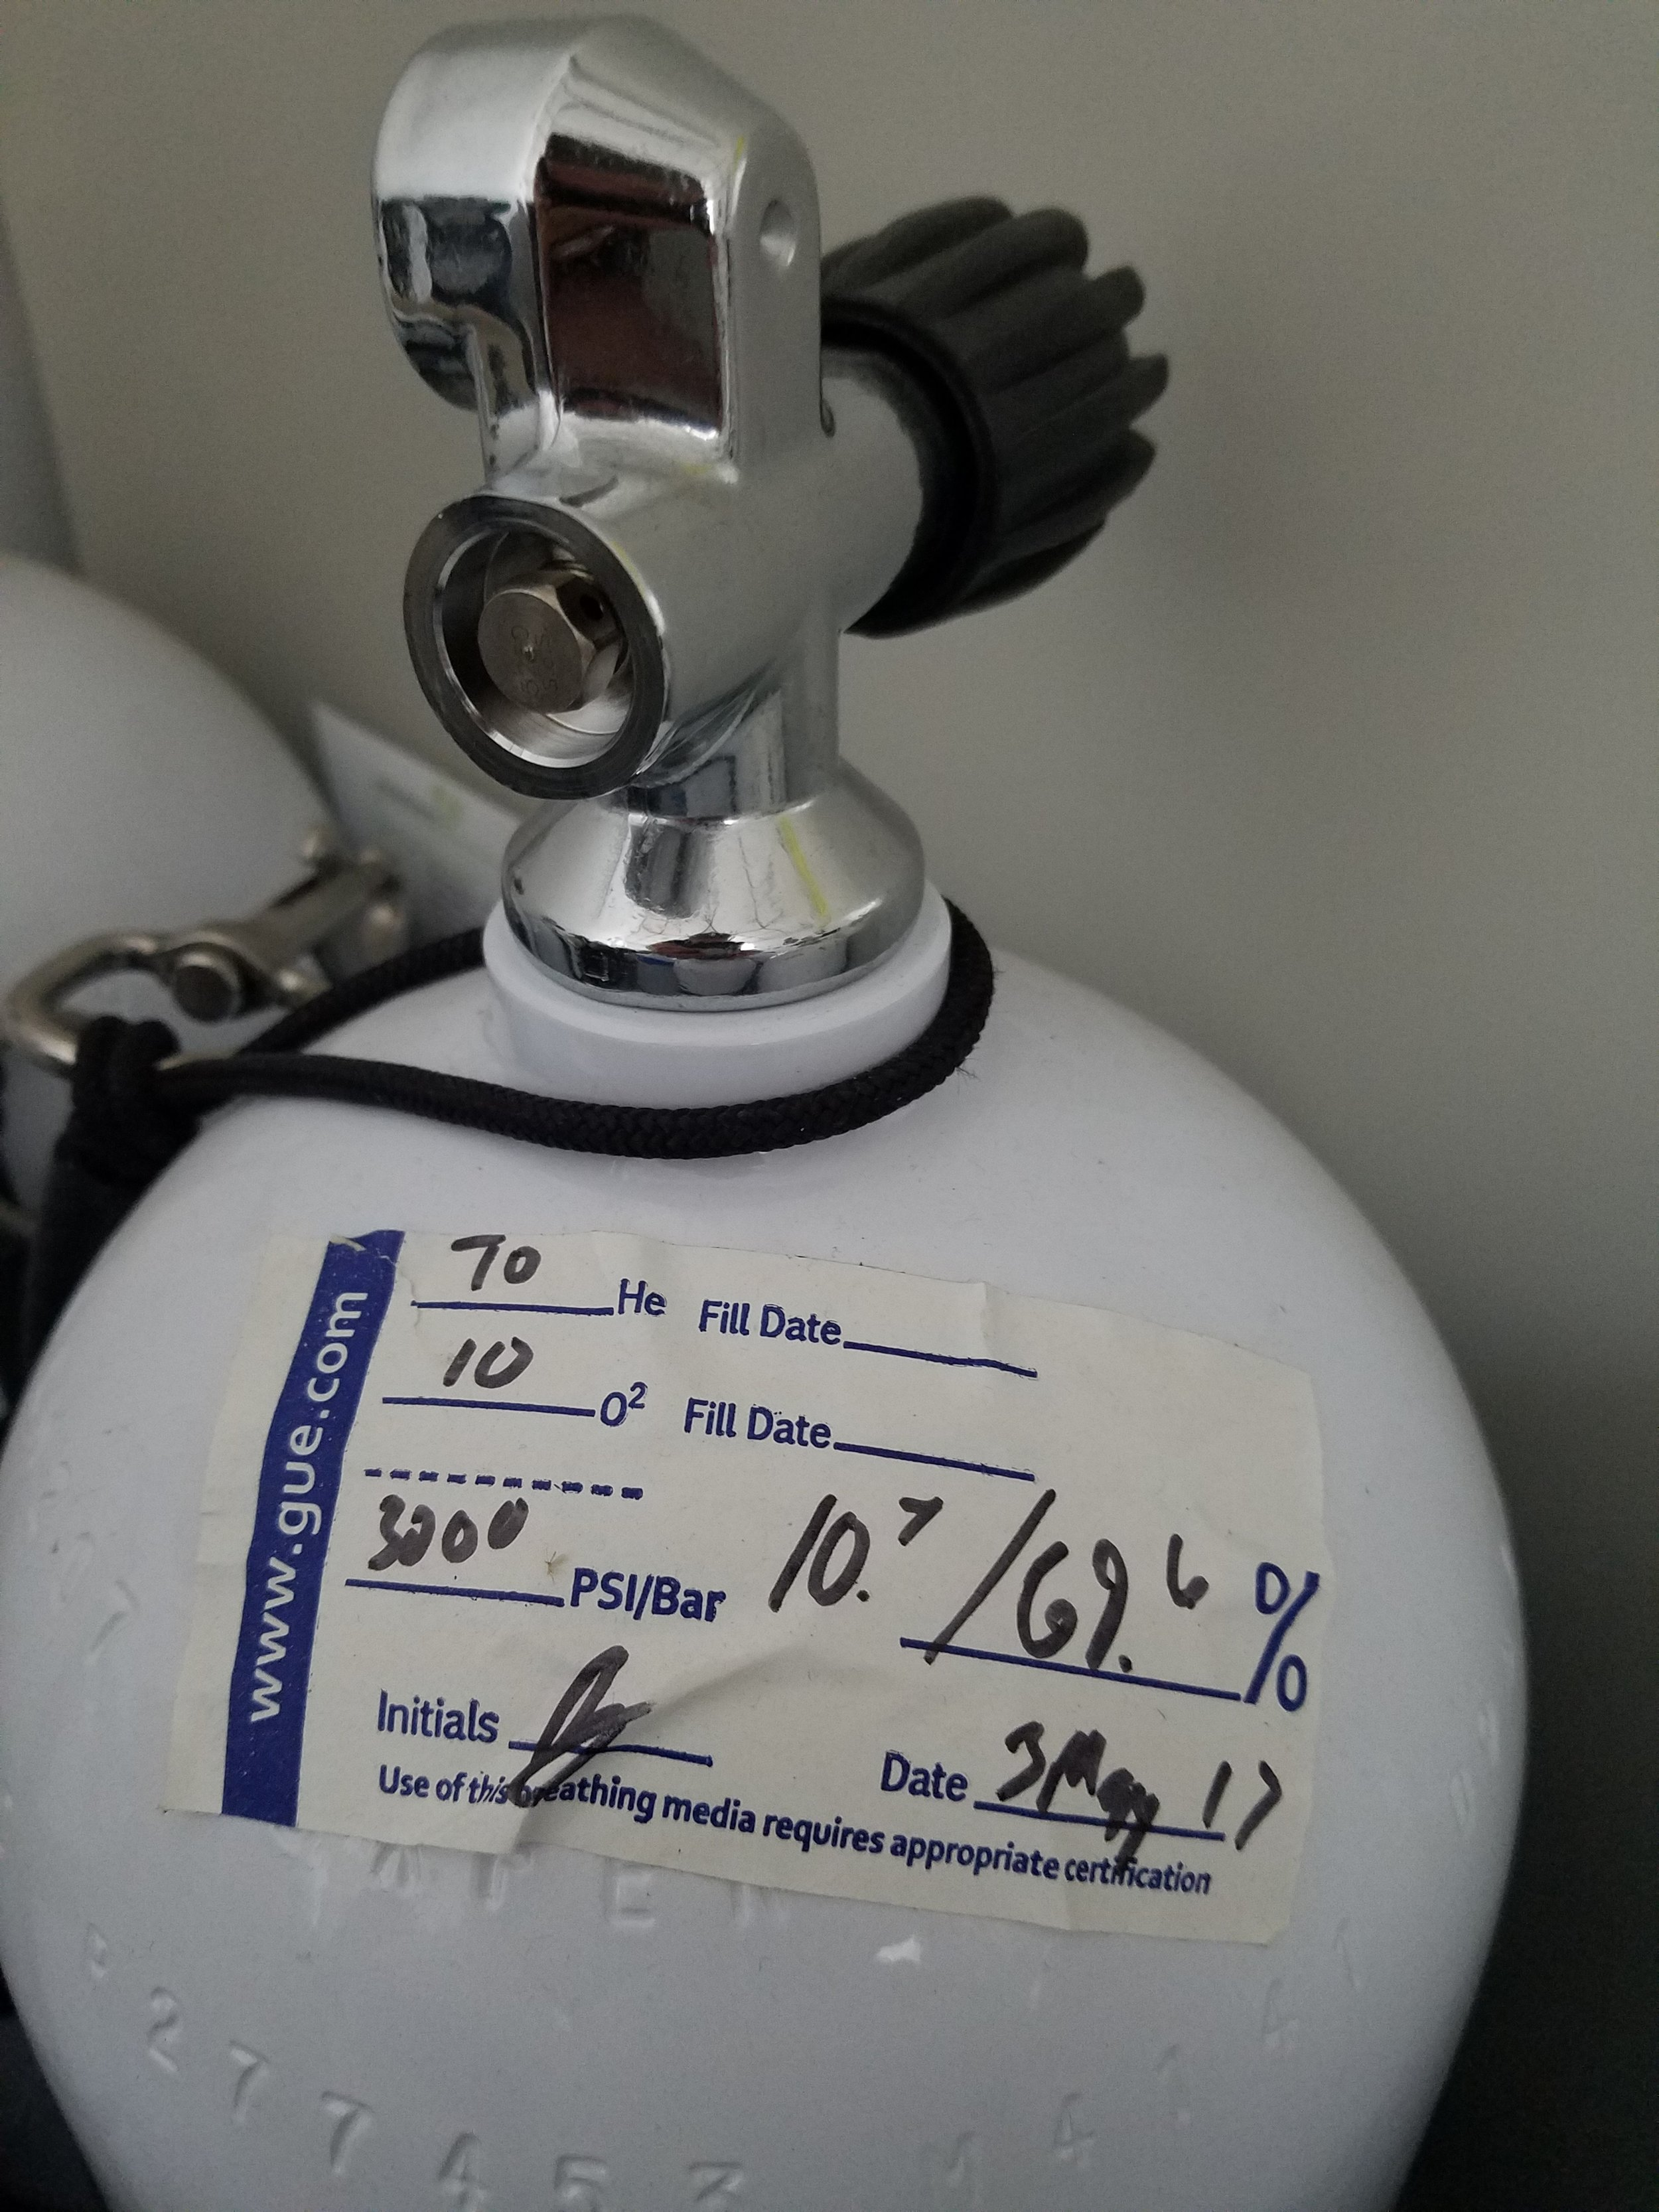 A simple procedure that takes mere seconds could save you from switching to the wrong gas at the wrong time or sharing the wrong gas with your team member should a need arise